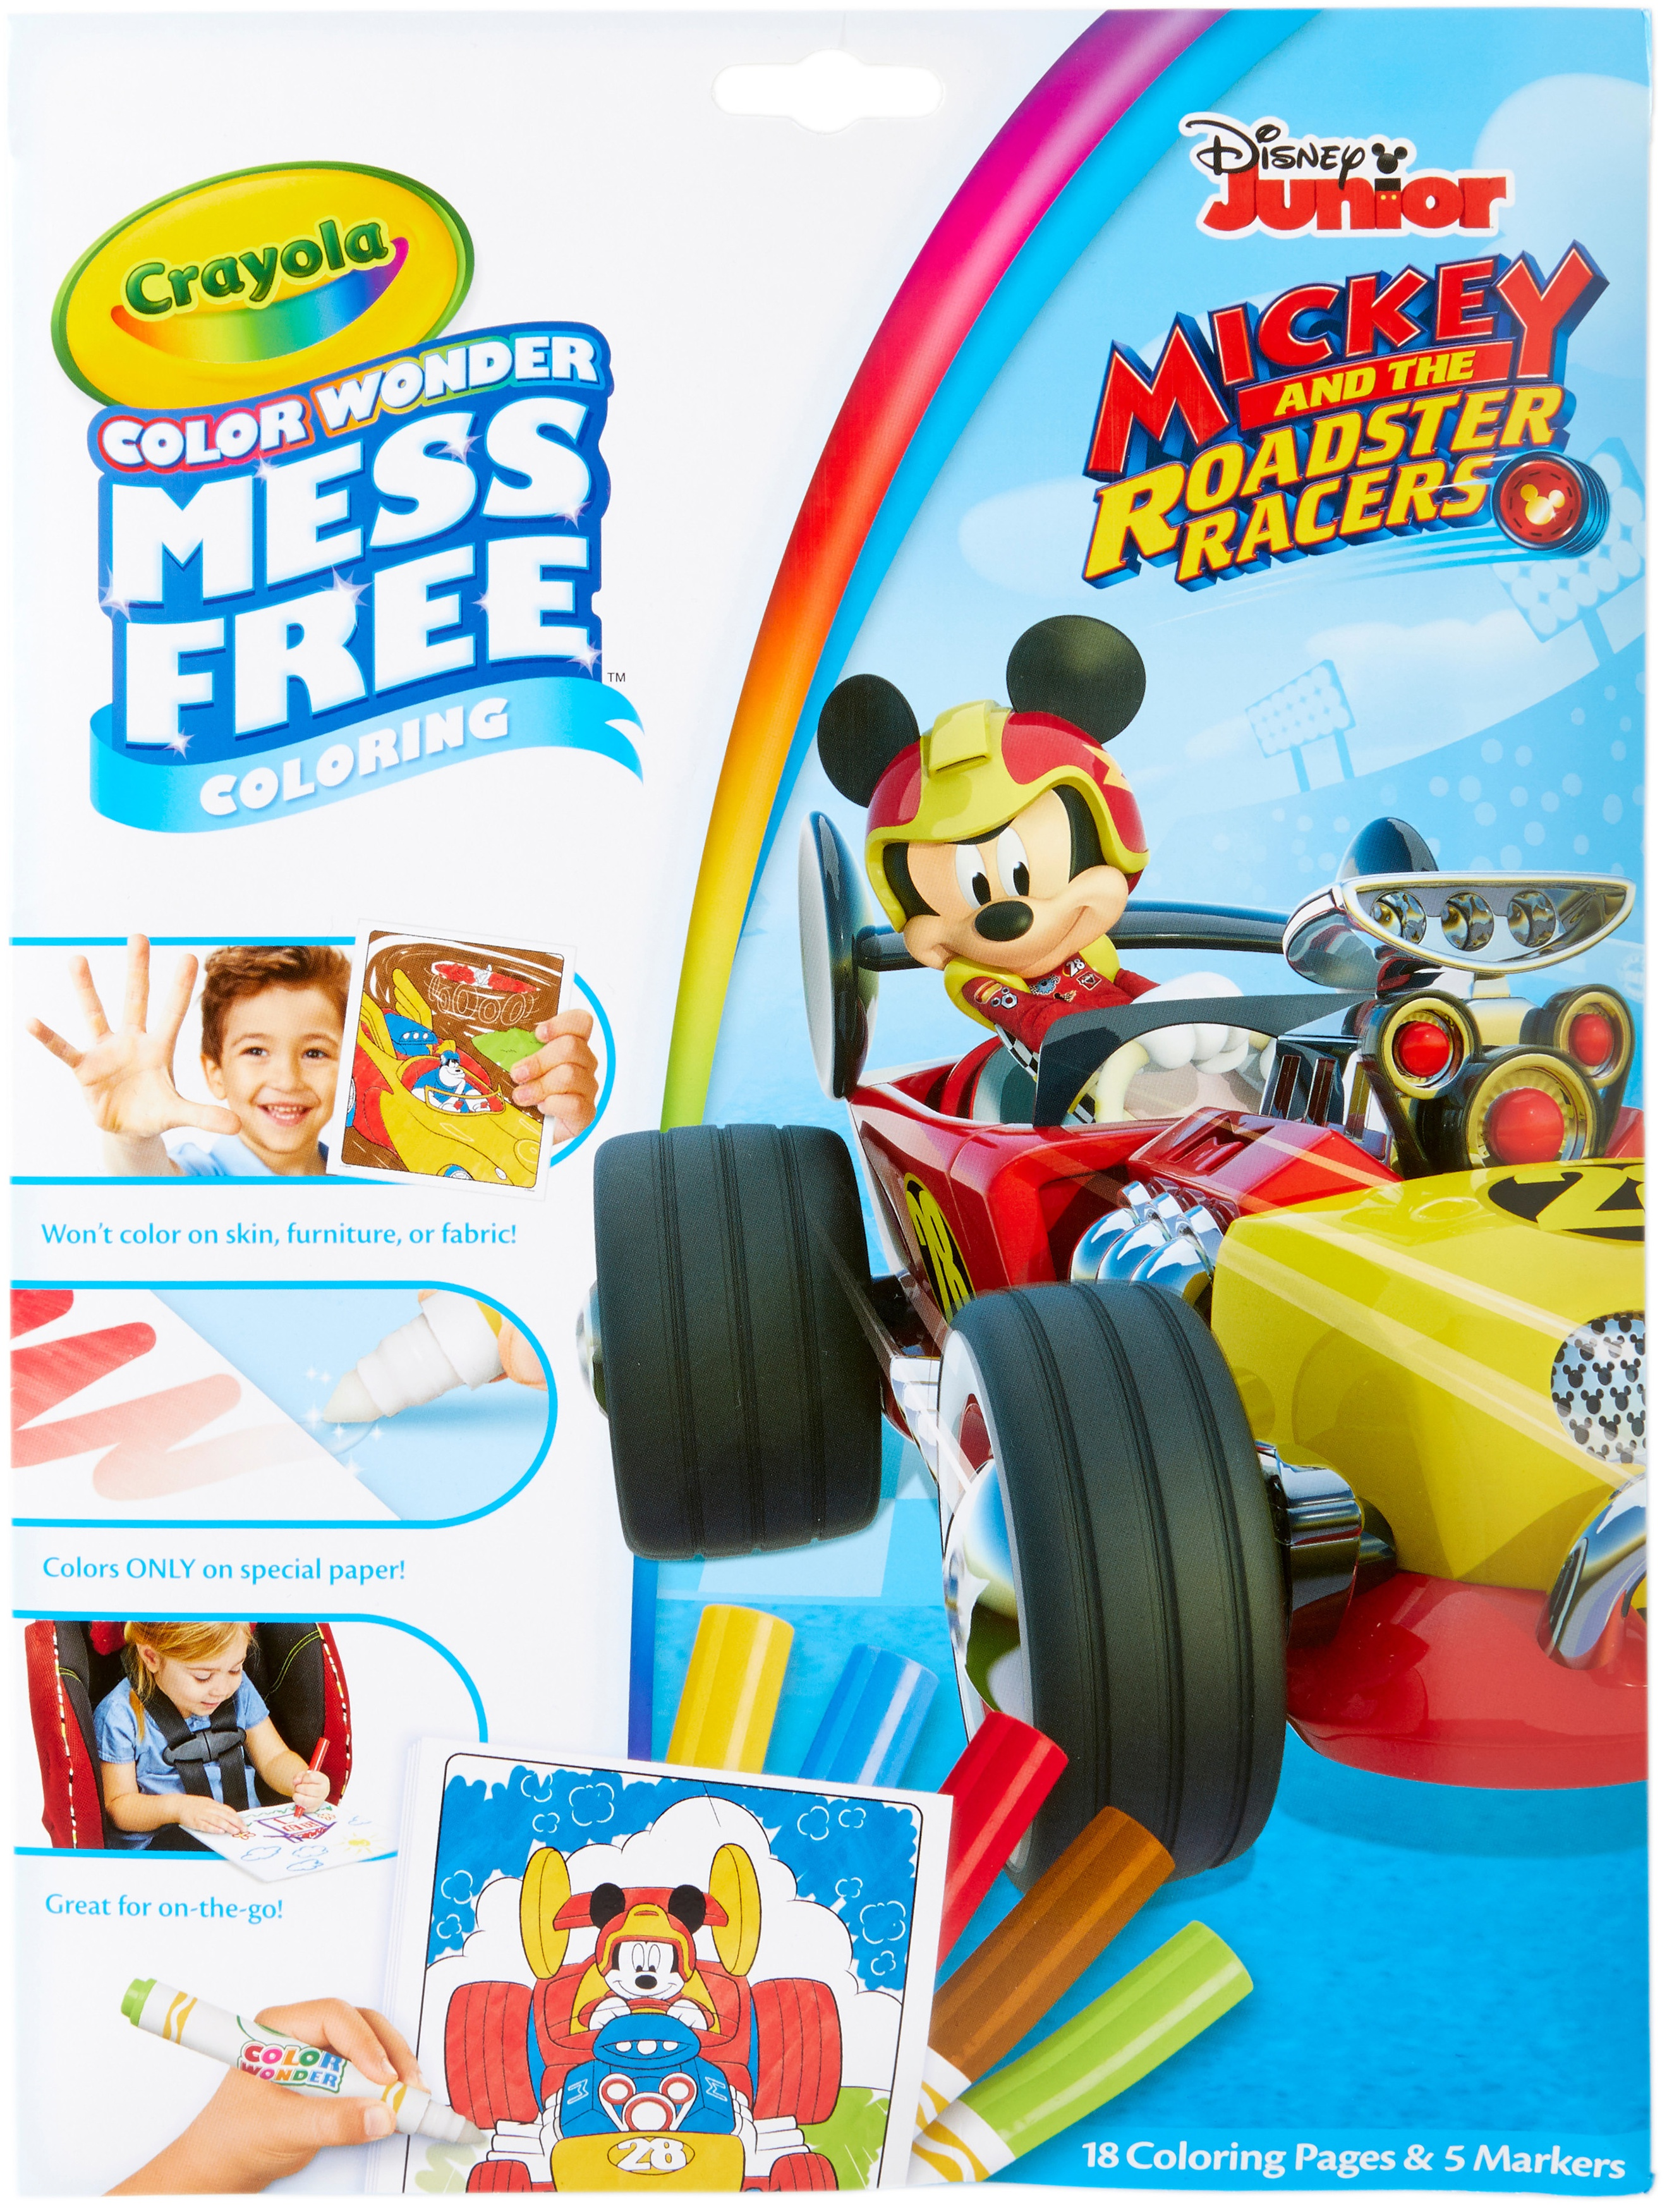 Crayola Color Wonder Coloring Pad & Markers-Mickey Mouse Roadster Racers